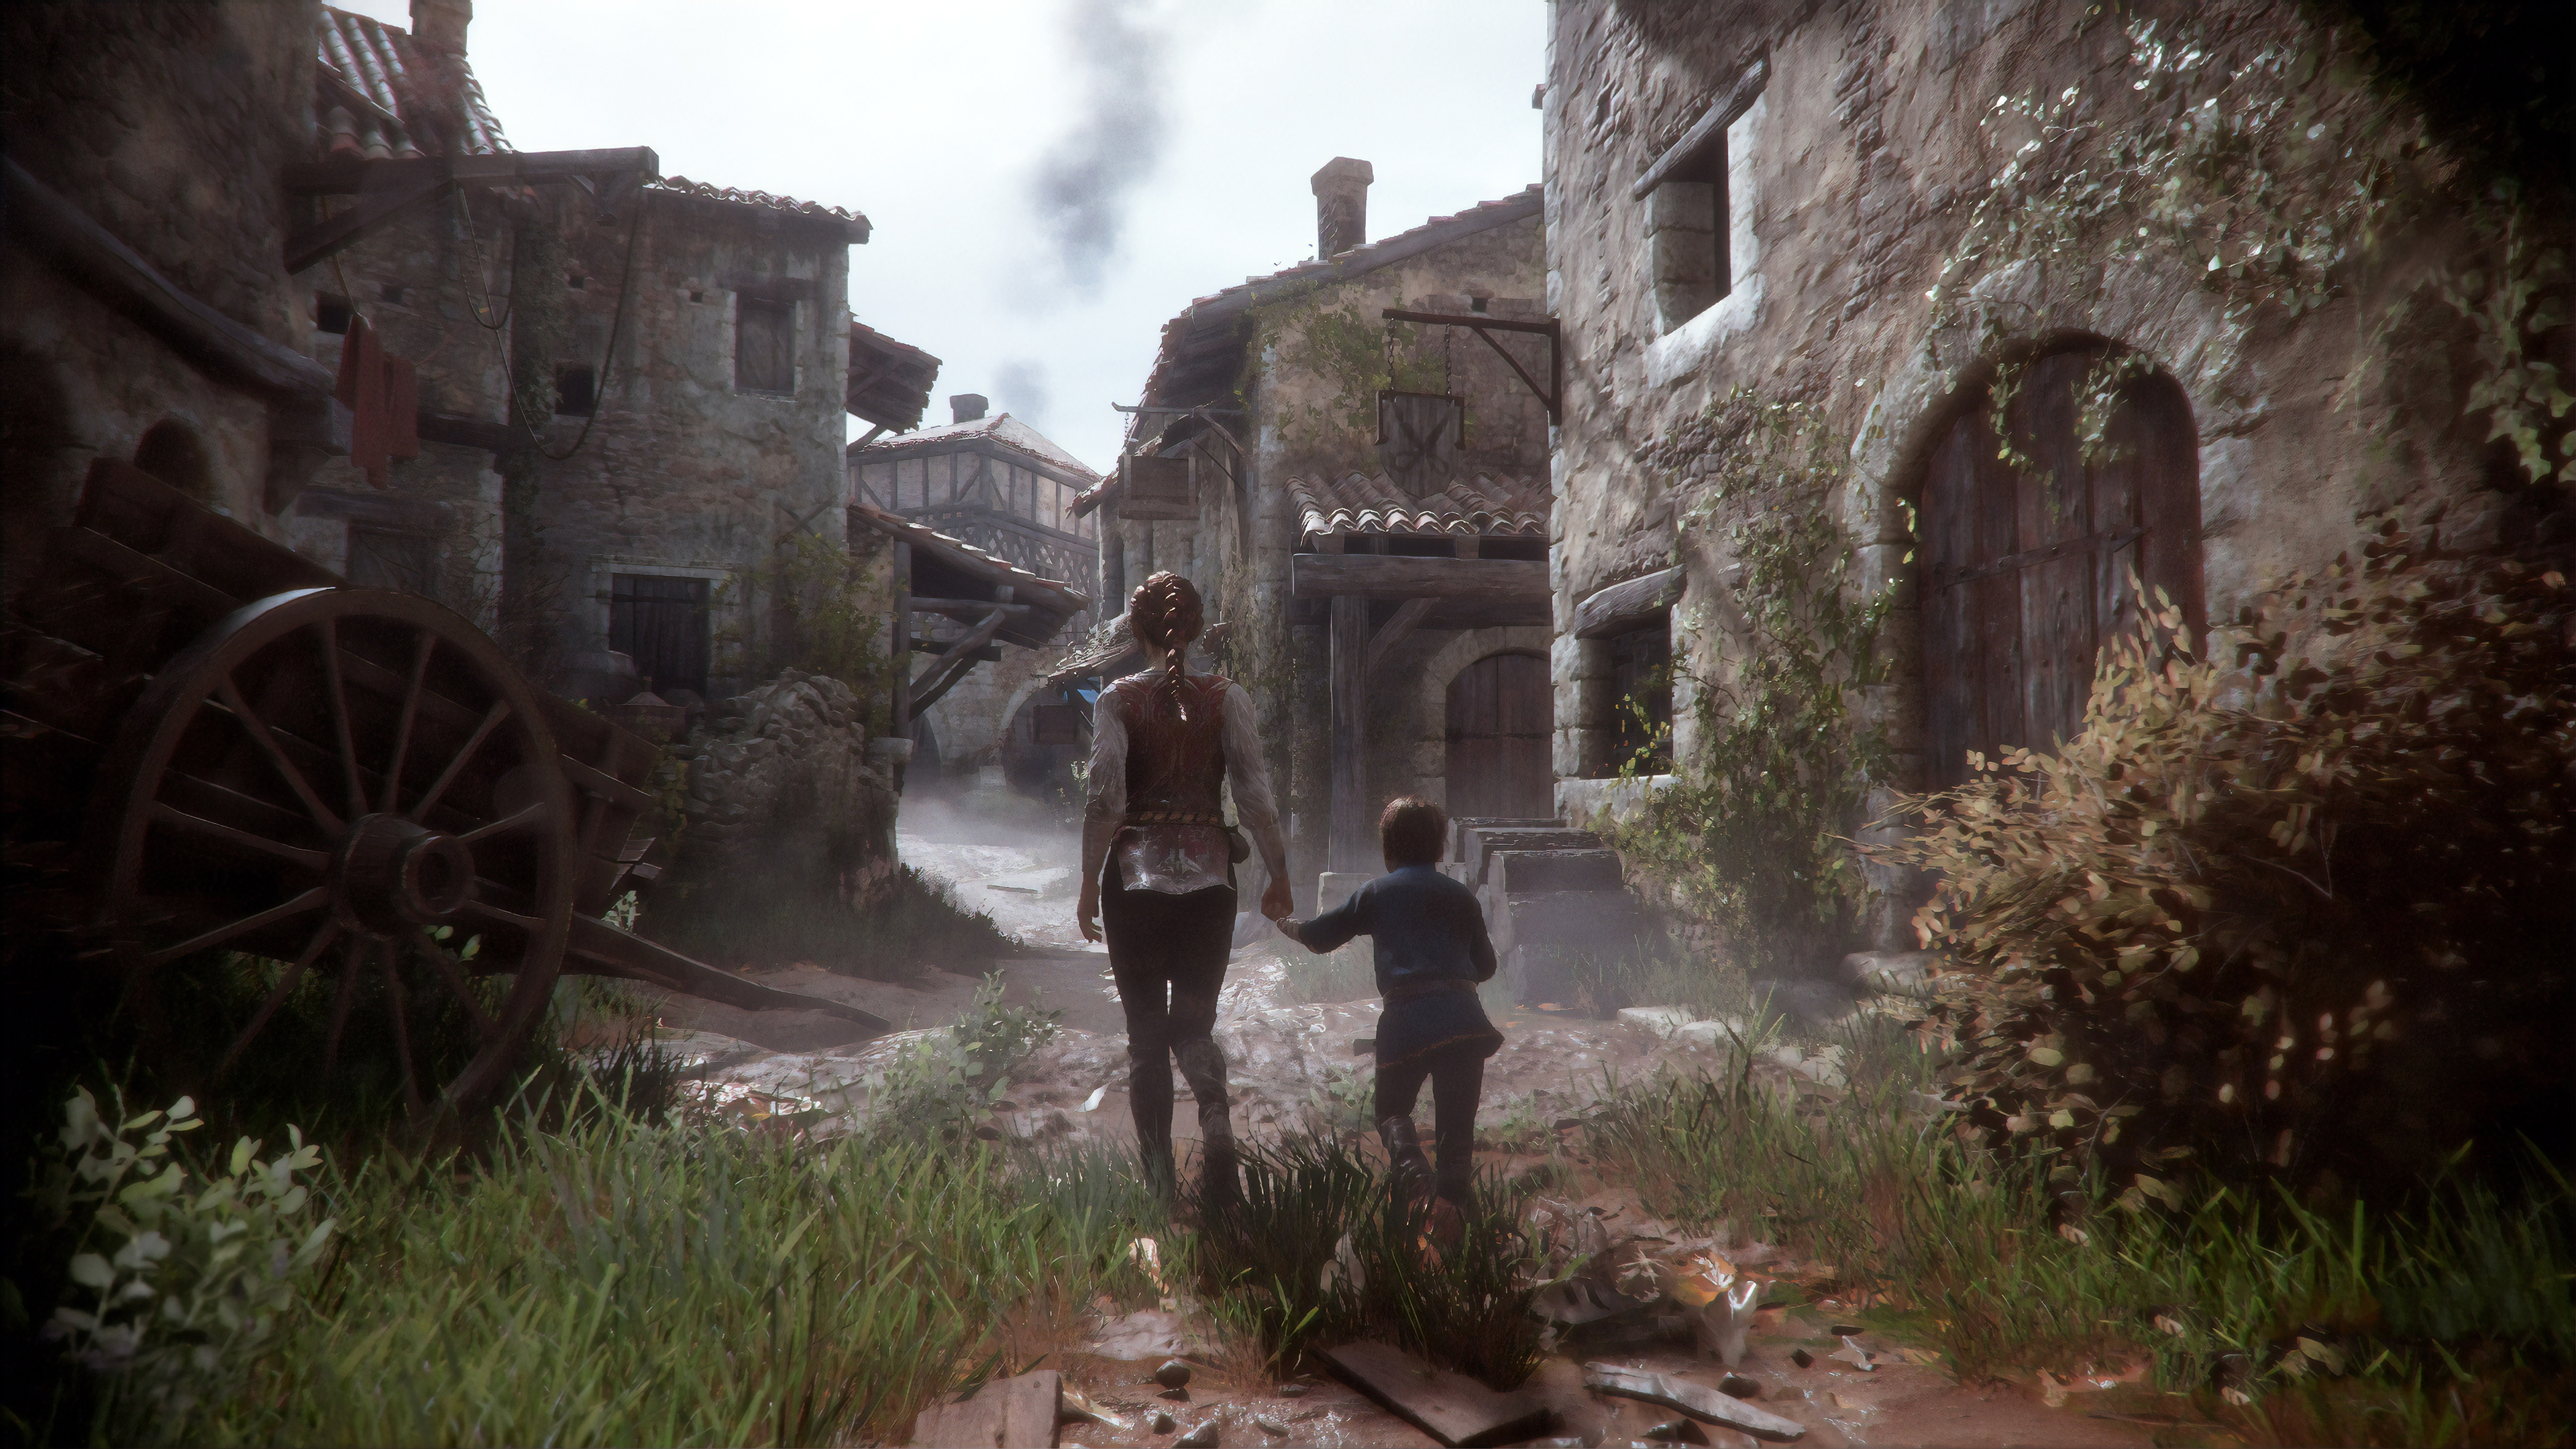 a plague tale innocence 2019 1559798065 - A Plague Tale Innocence 2019 - xbox games wallpapers, ps games wallpapers, pc games wallpapers, hd-wallpapers, games wallpapers, a plague tale innocence wallpapers, 4k-wallpapers, 2019 games wallpapers